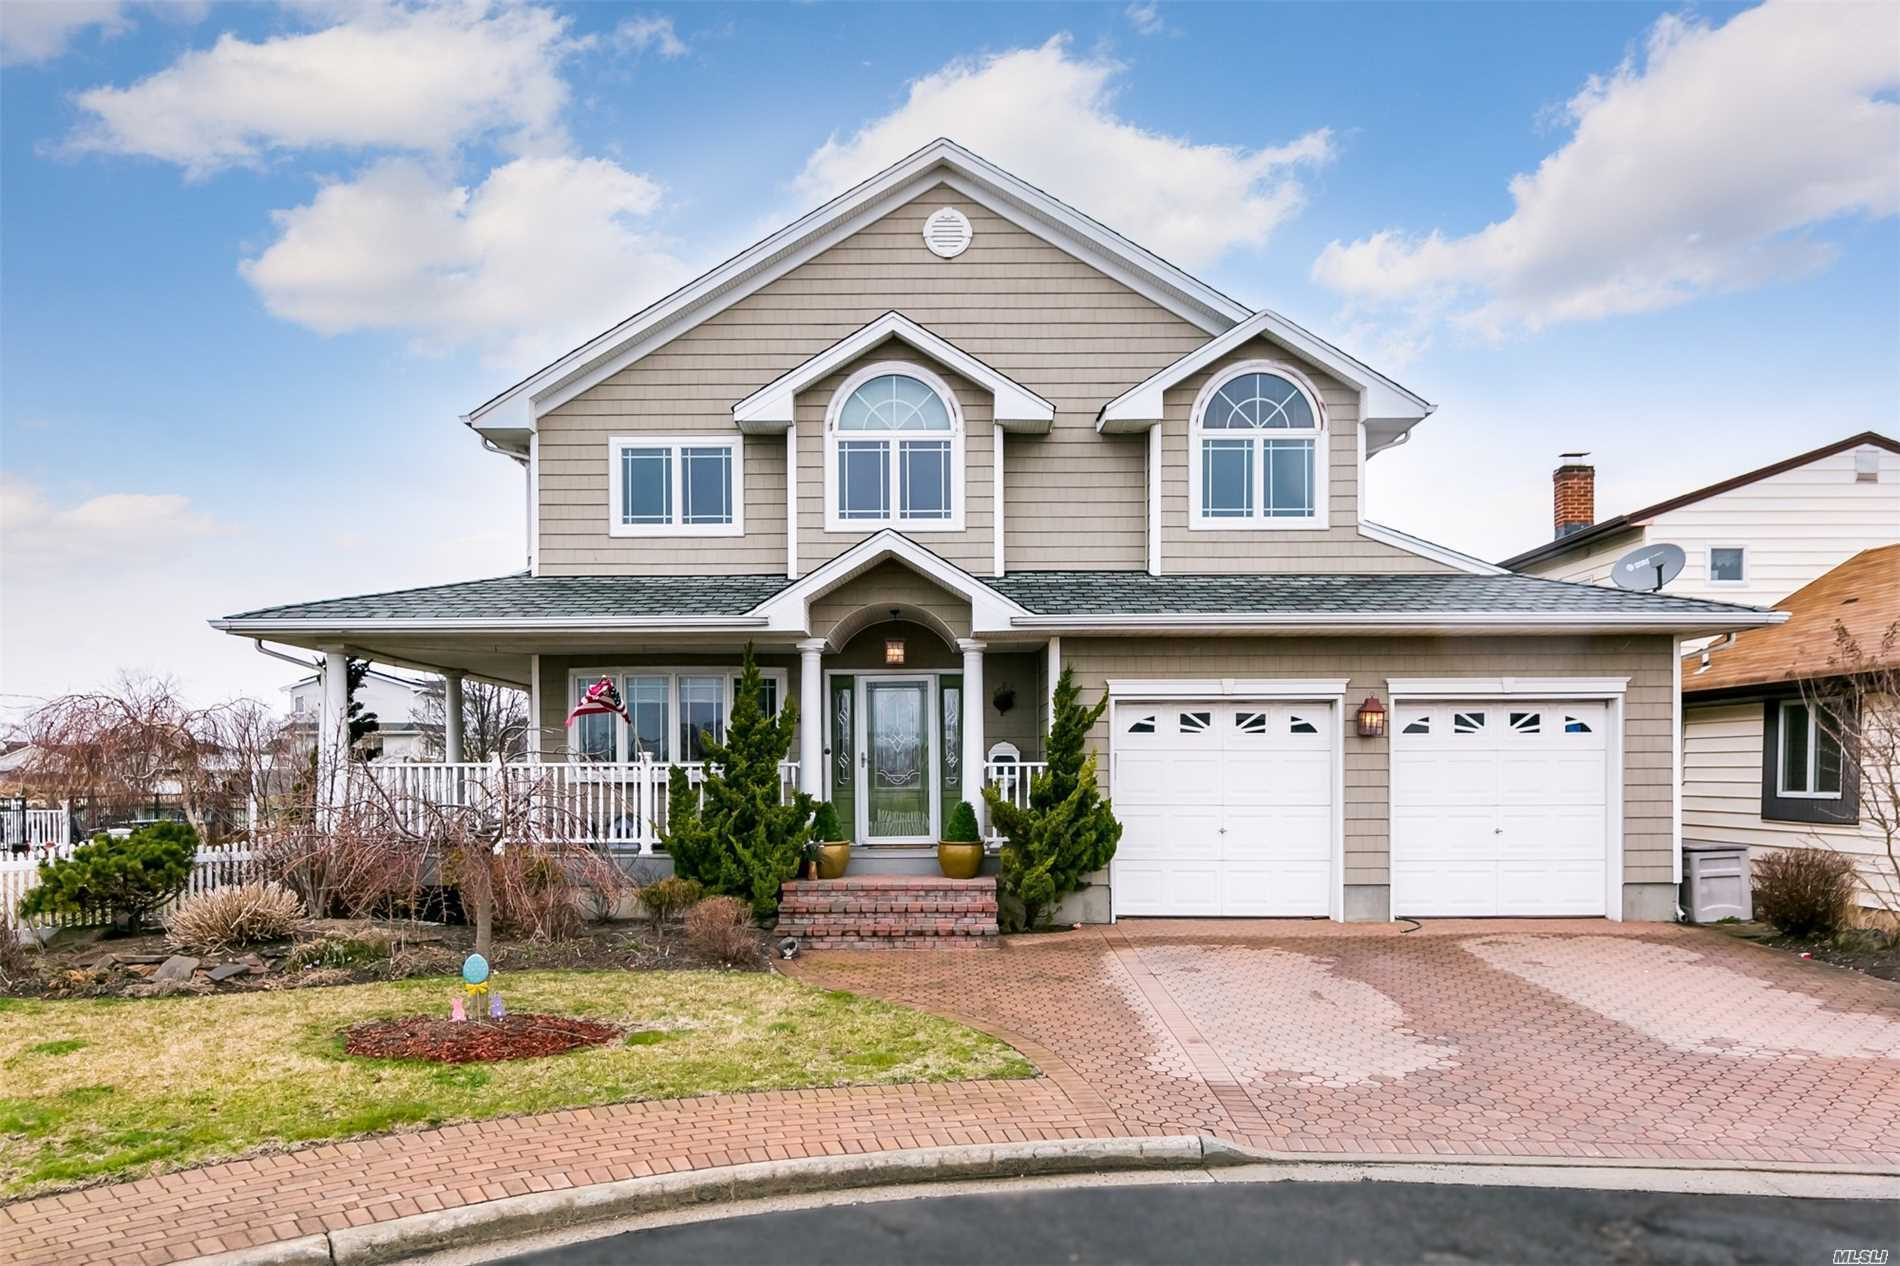 Stunning Custom Built 4 BR, 2.5 BATH, *3, 800 SQ FT Colonial on Deep Wide Canal with View of Channel- Boaters Dream w/ Waterview Wrap around Porch, Huge Landscaped yard with Dock, Deck, Floats.. can accomodate any size Boat- Minutes to Debbs Inlet --Gourmet Chefs Eat -In- Kitchen w/ Center Island, Formal Dining Room, Spacious Living Room with Gas Fireplace, @ Car Garage, Gas heat(5 Zones) , Radiant heat..